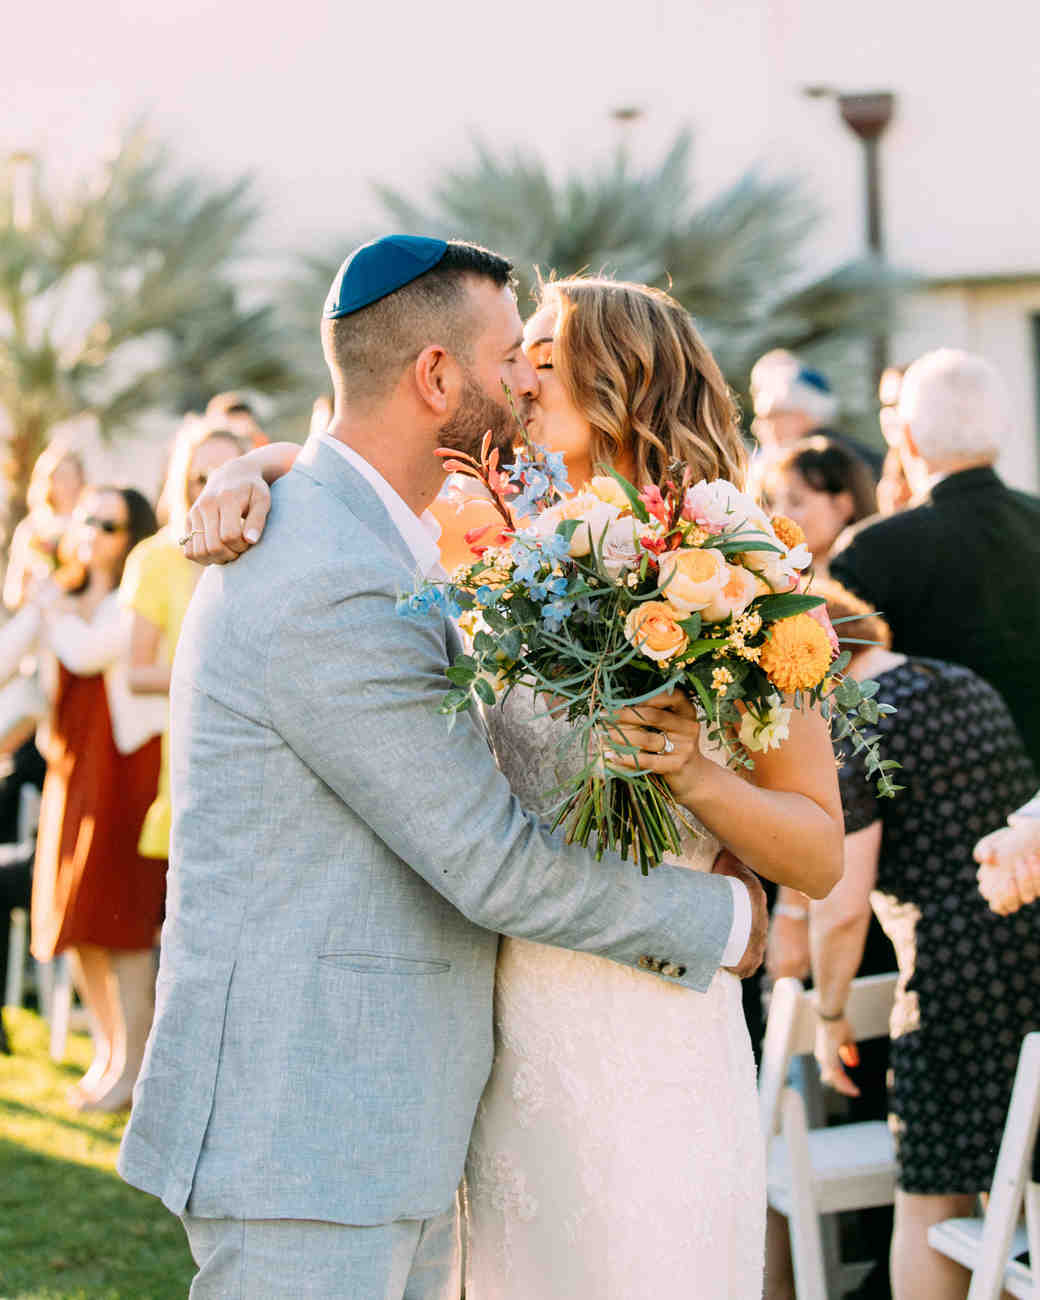 bride groom wedding kiss wearing blue yarmulke